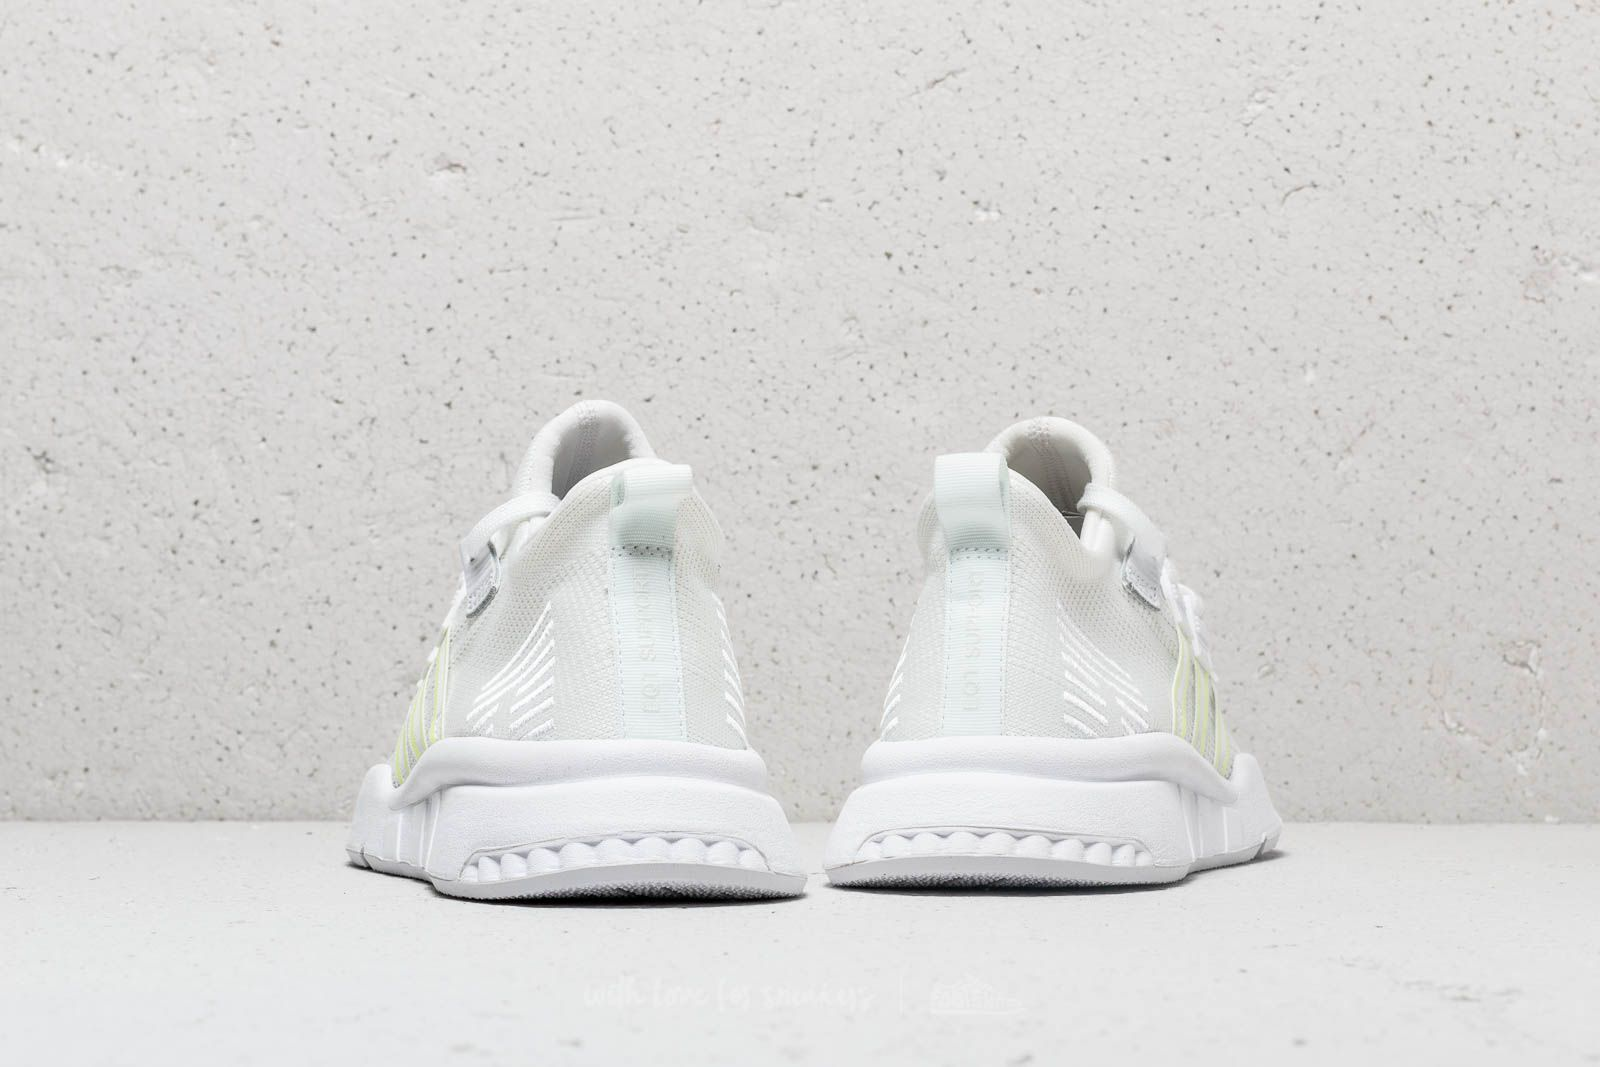 adidas EQT Support Mid ADV J Ftw White  Crystal White  Energy Ink at a 660f0b3f3d91a